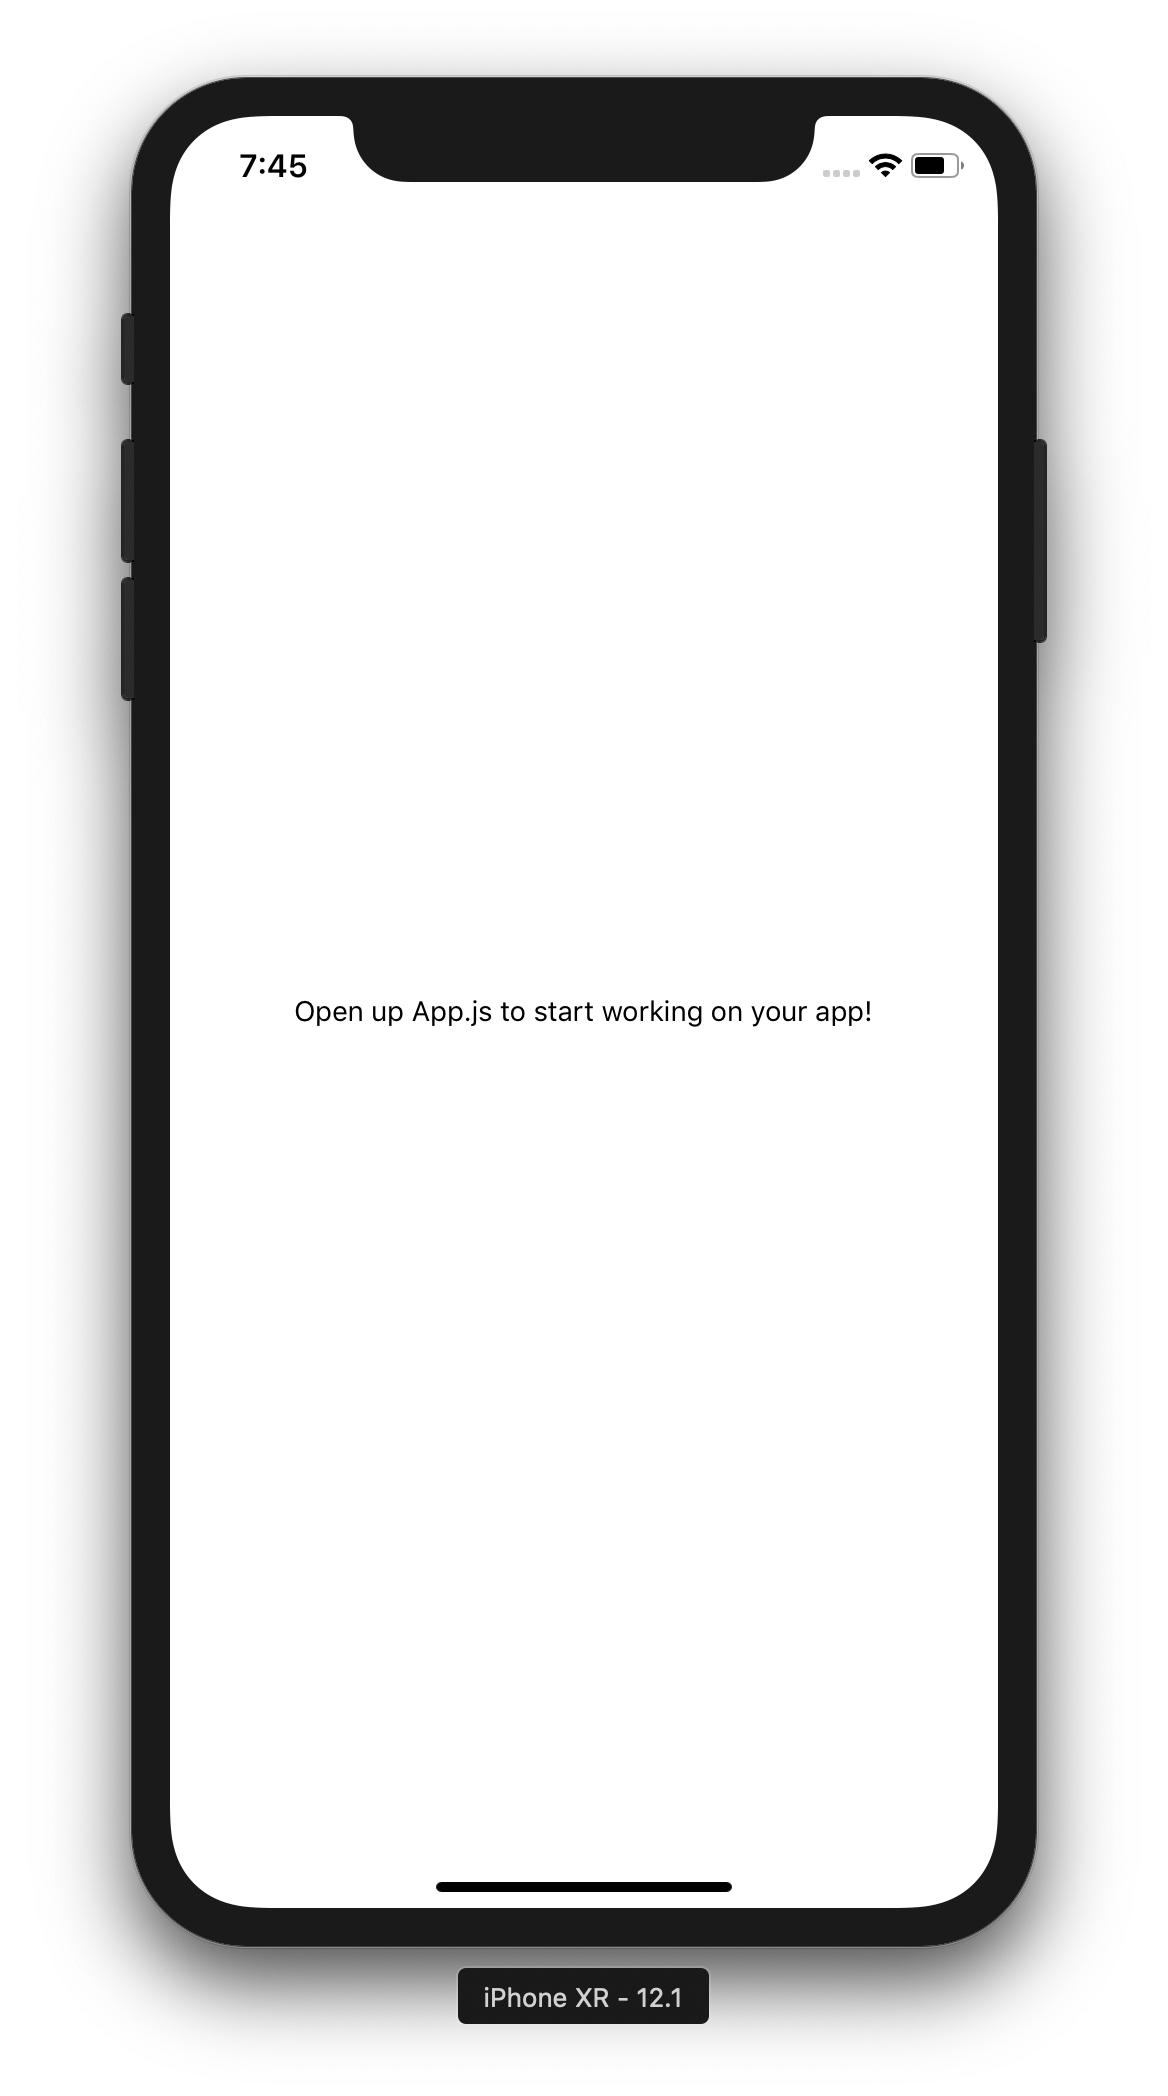 Our starting app, as seen in the simulator